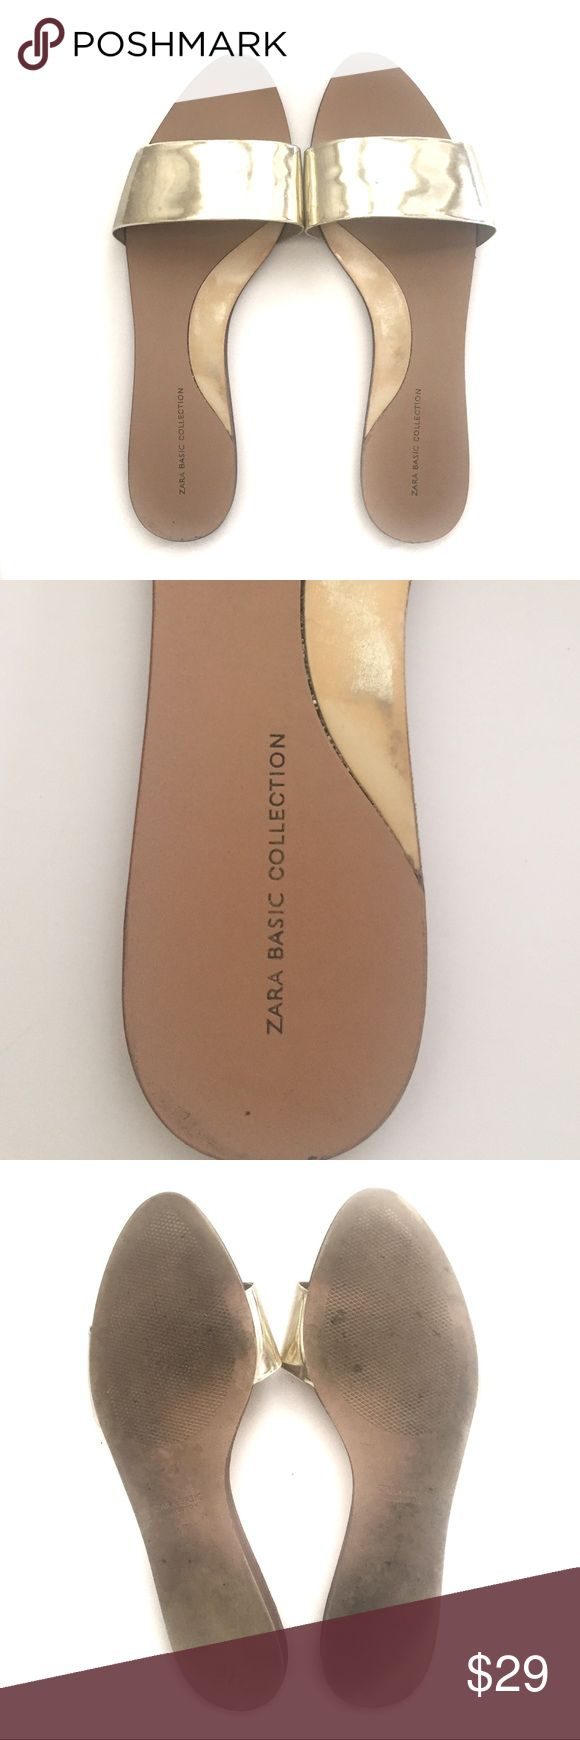 Zara Shiny Gold Flat Sandals Slide Shoes  Size 9 Great gently used condition! Zara Shoes Sandals